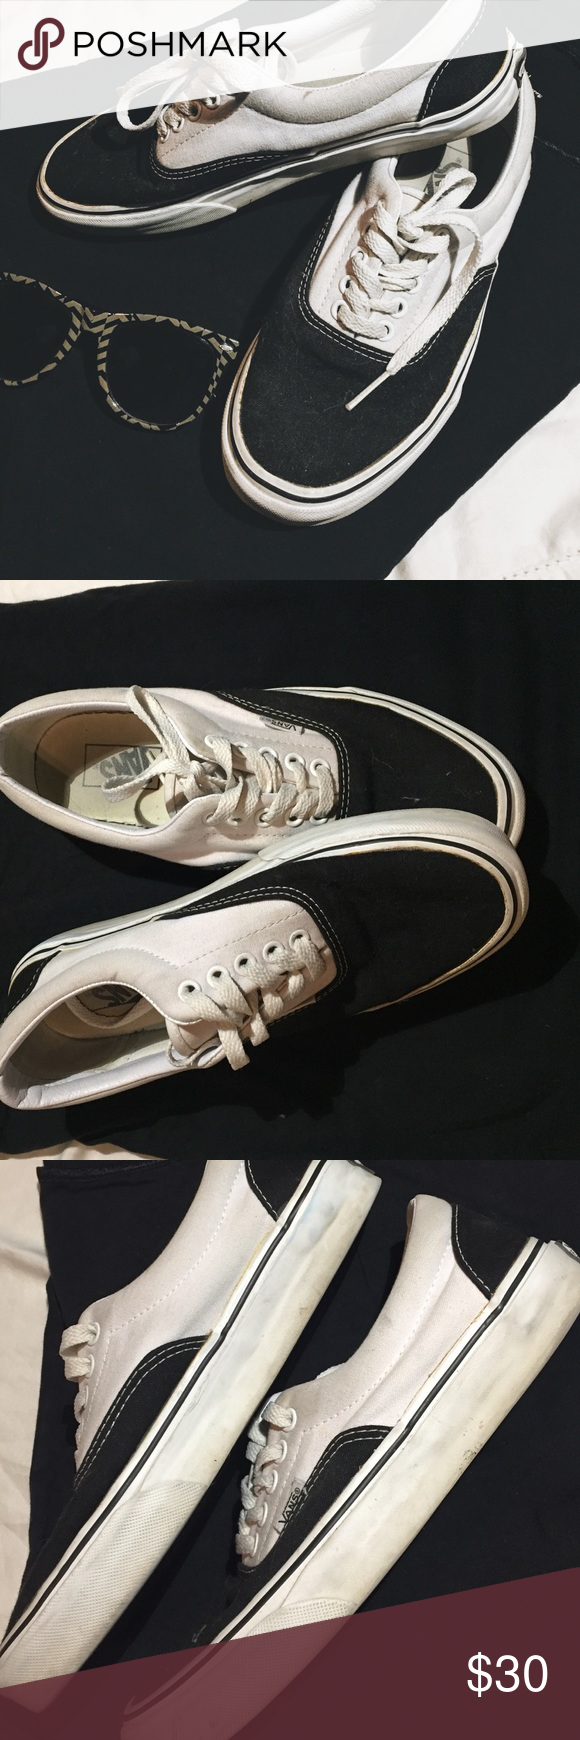 9c542f1fb3c Black   White Vans